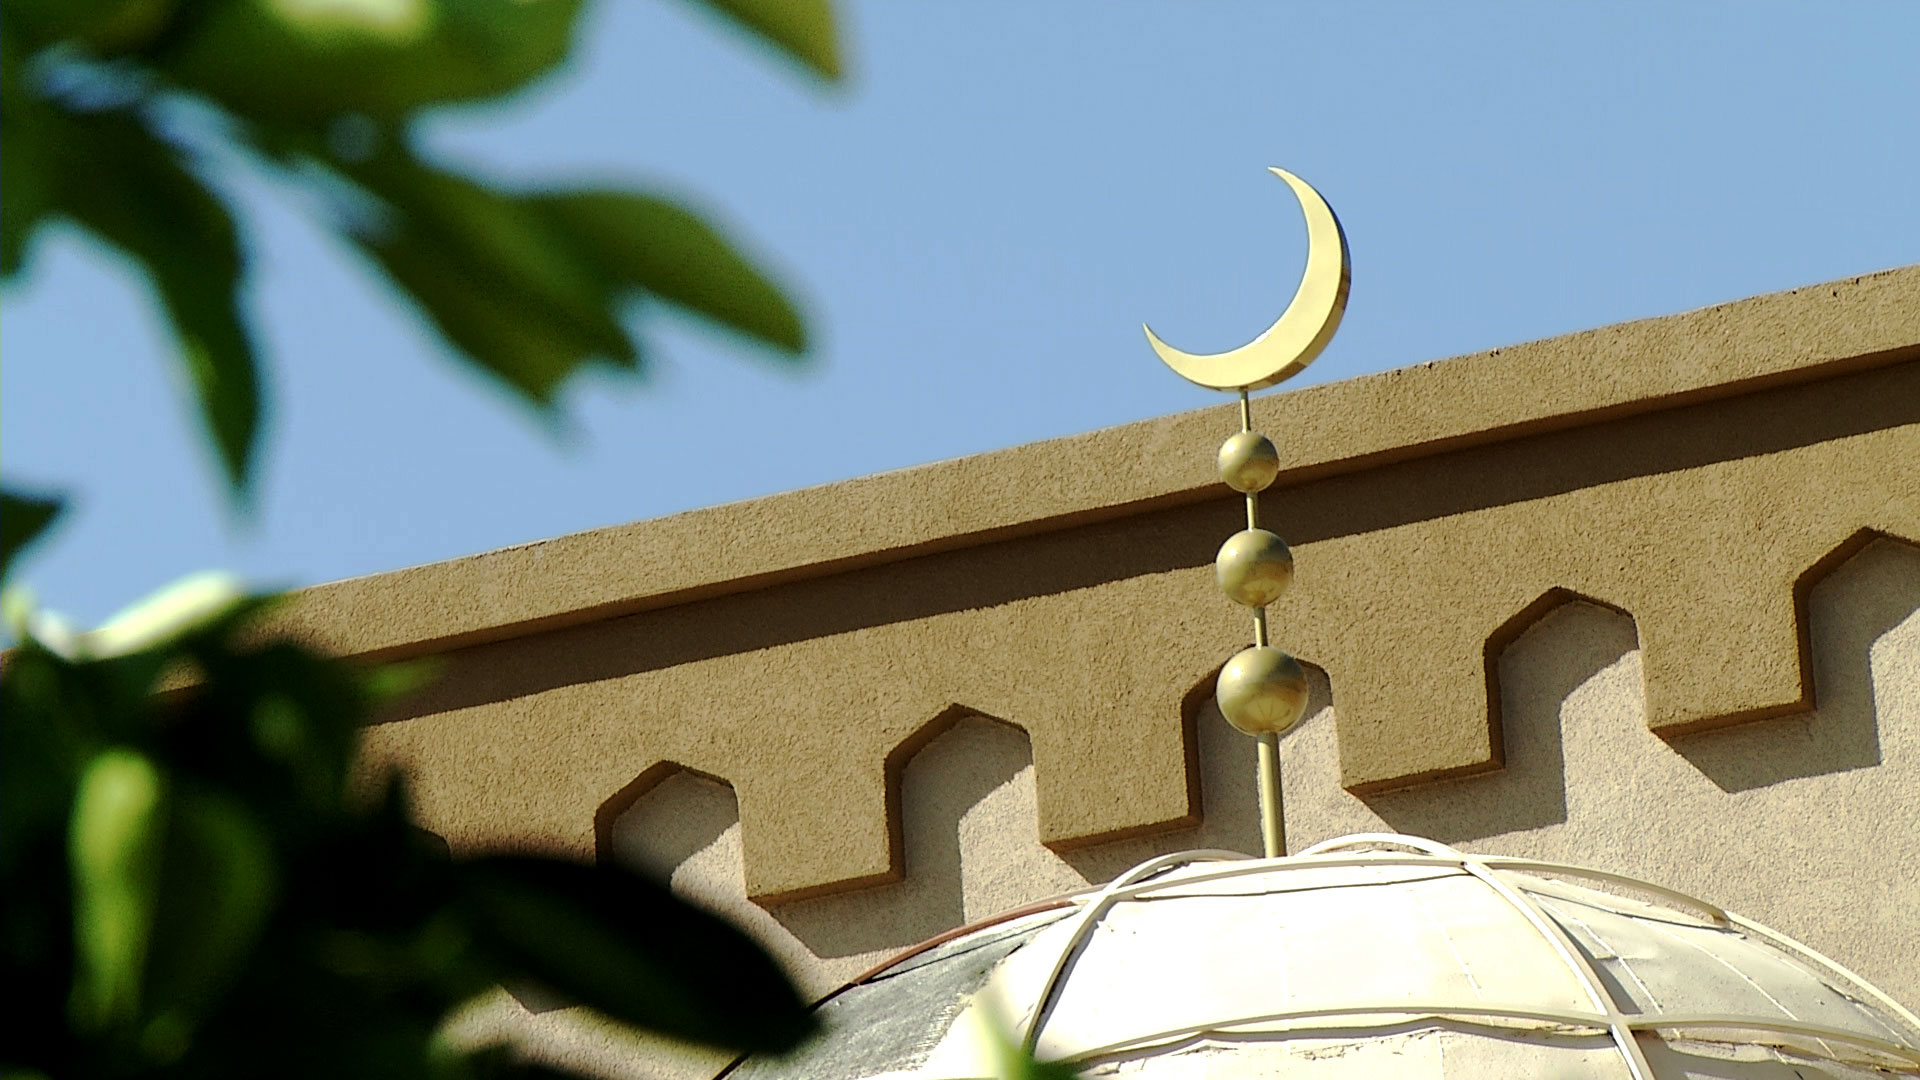 The top of the Muslim Community Center of Tucson. May 2020.